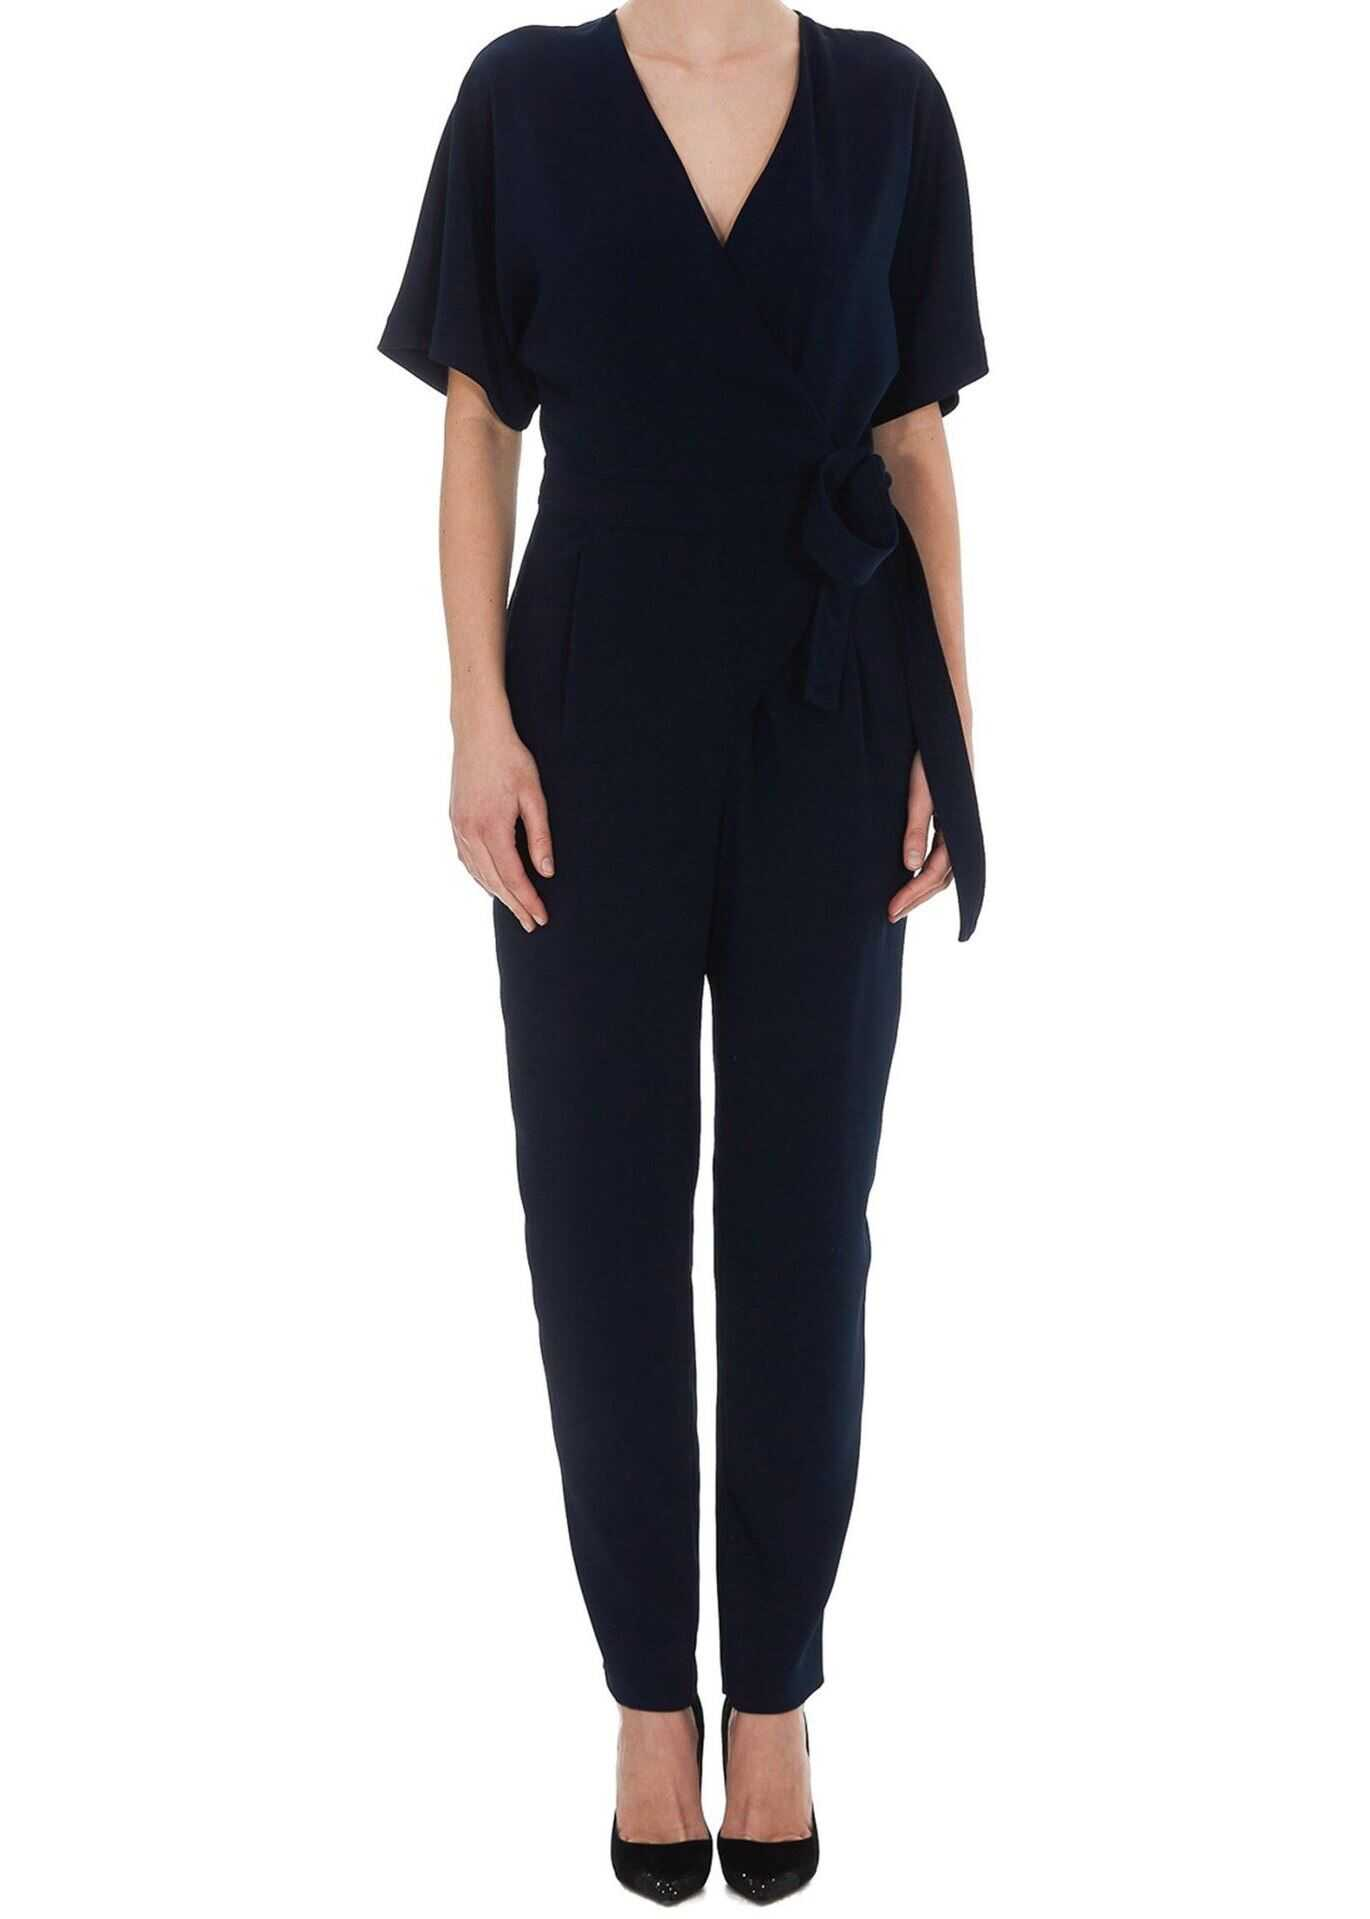 P.A.R.O.S.H. Cady Jumpsuit In Dark Blue Blue